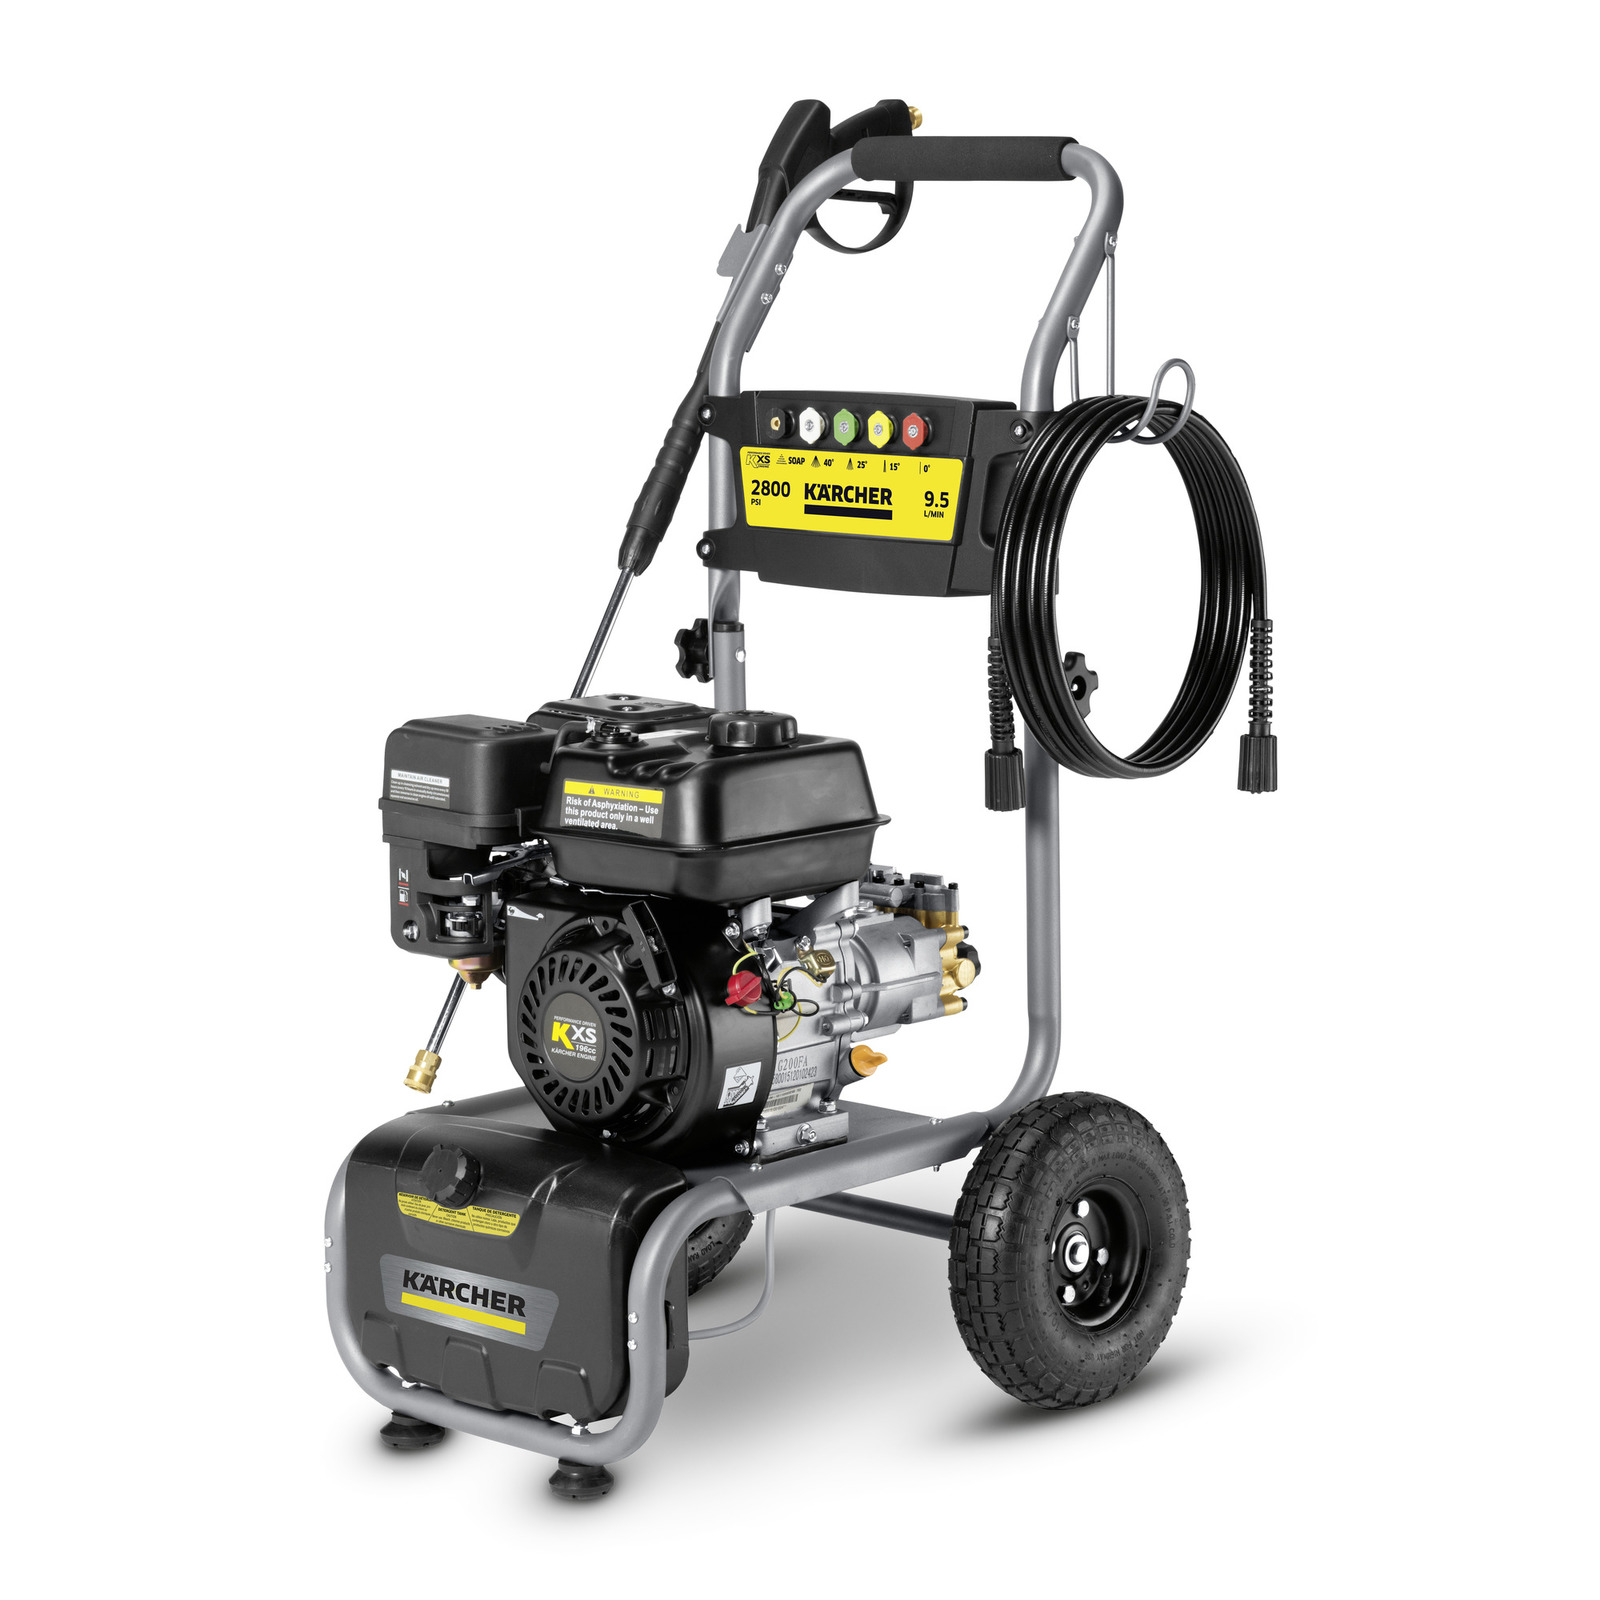 karcher 2800 psi pressure washer review